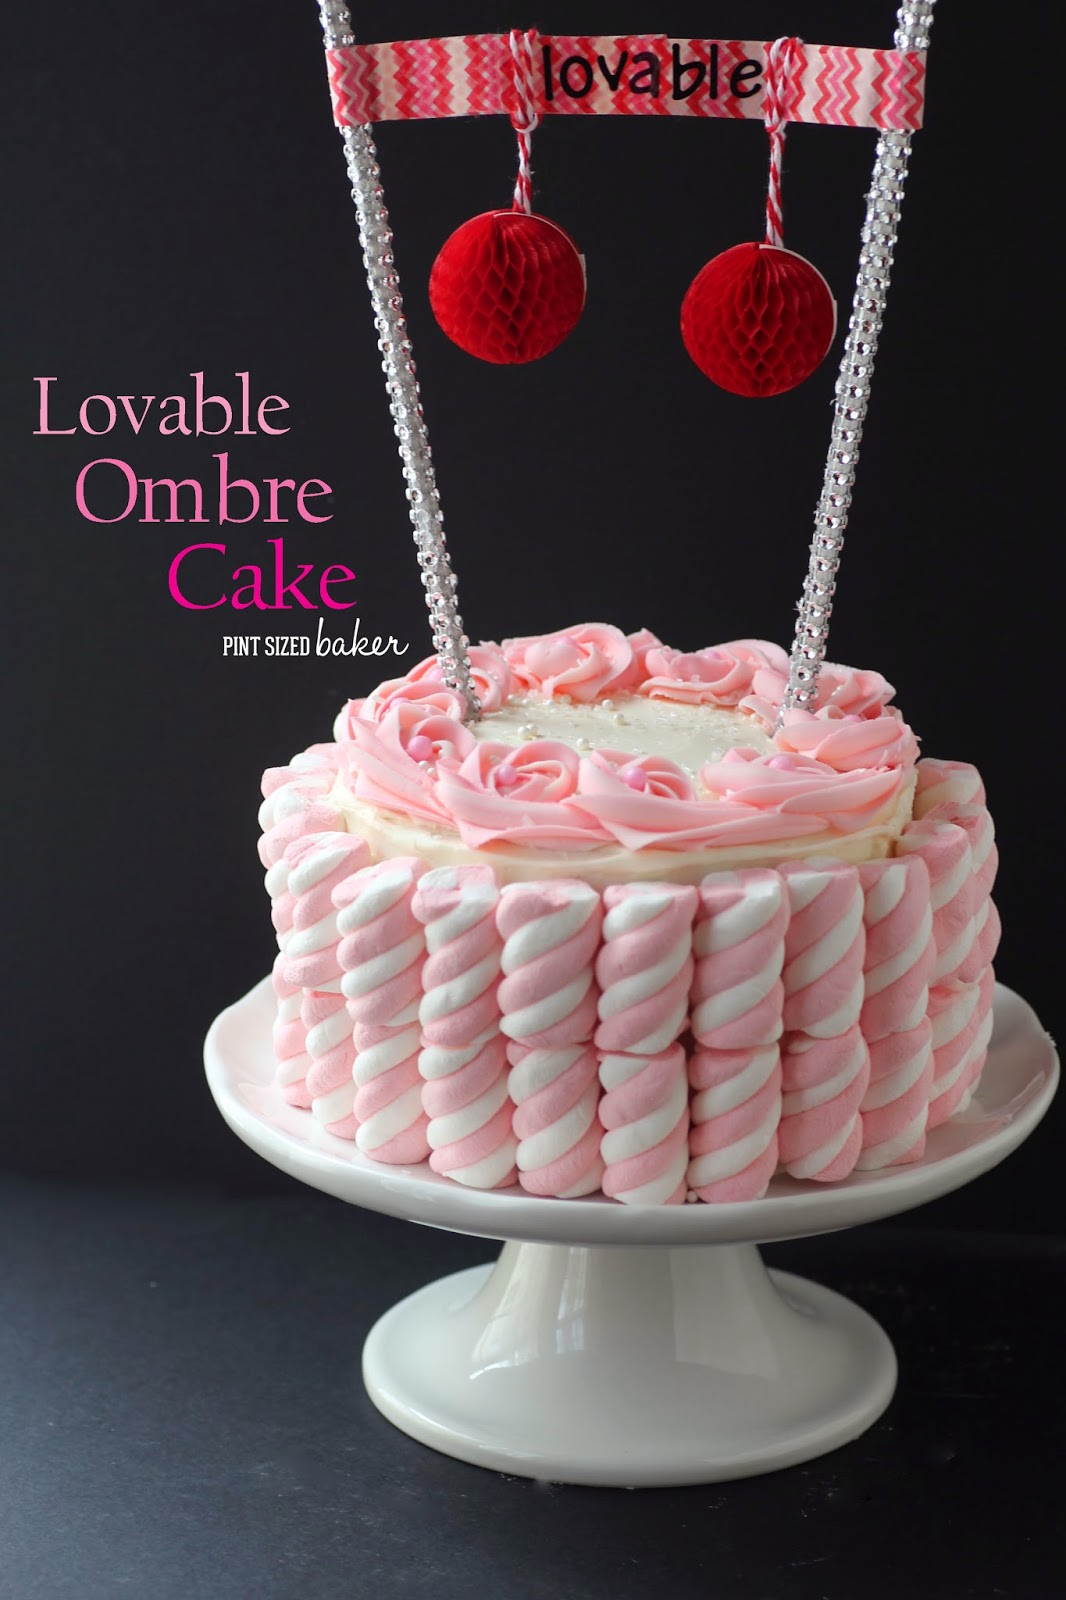 I think that this Lovable Ombre cake would look so cute at a Valentine's Day tea party! The pink layers inside would look so pretty for the party!